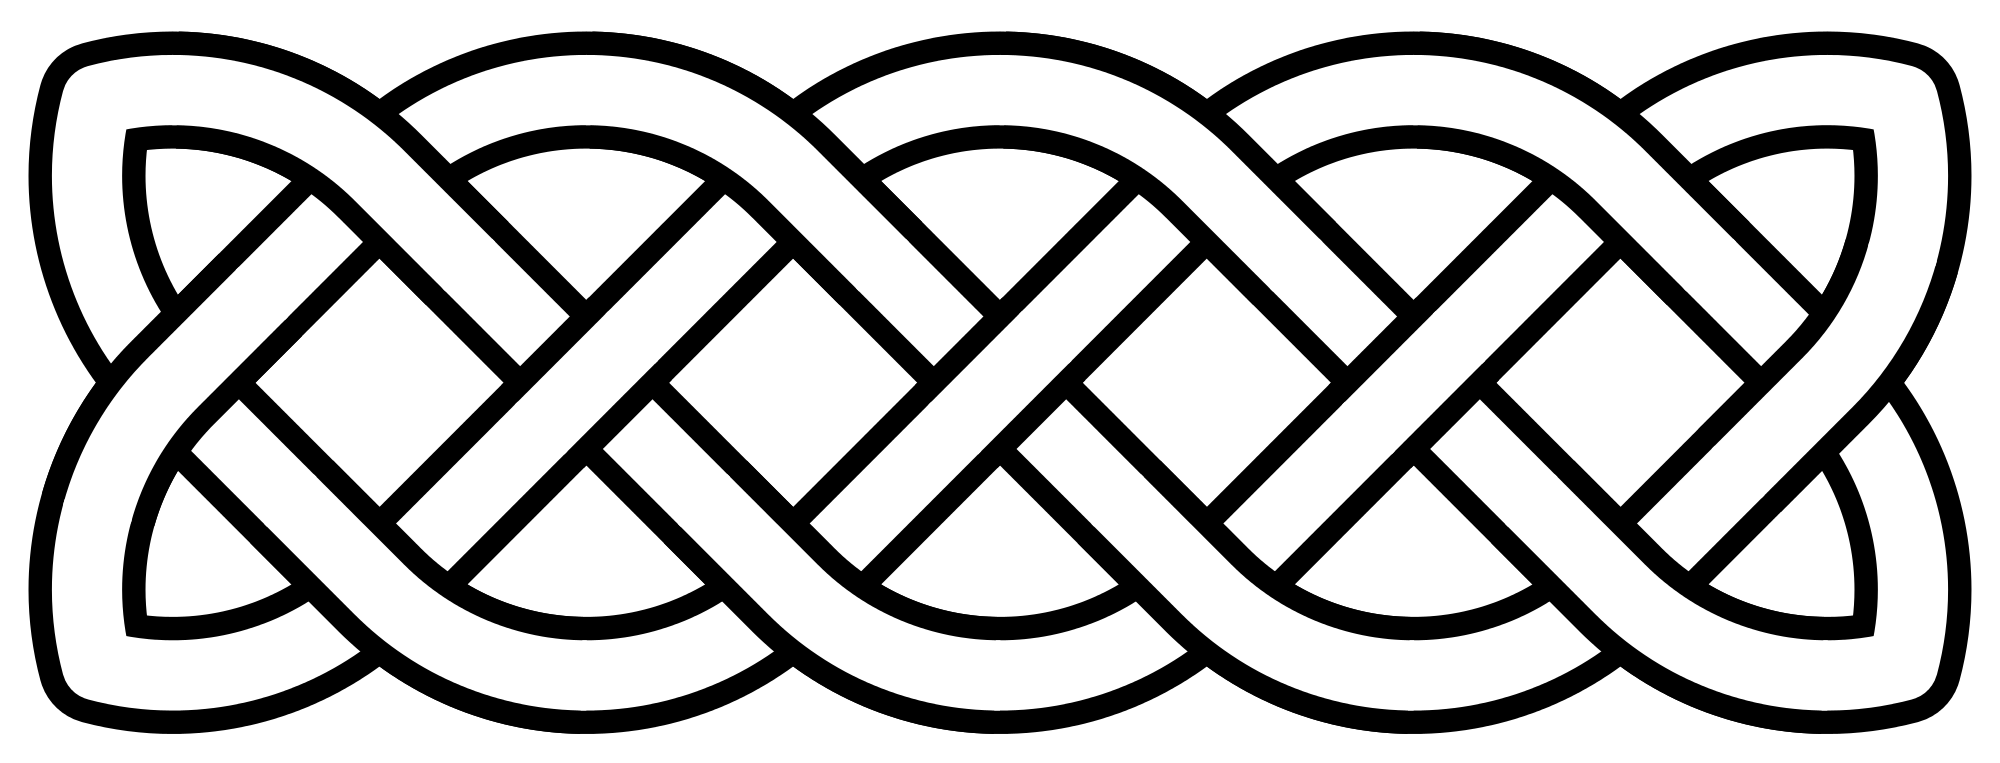 Celtic cross clipart black and white clip art download File:Celtic-knot-basic-linear.svg - Wikimedia Commons clip art download